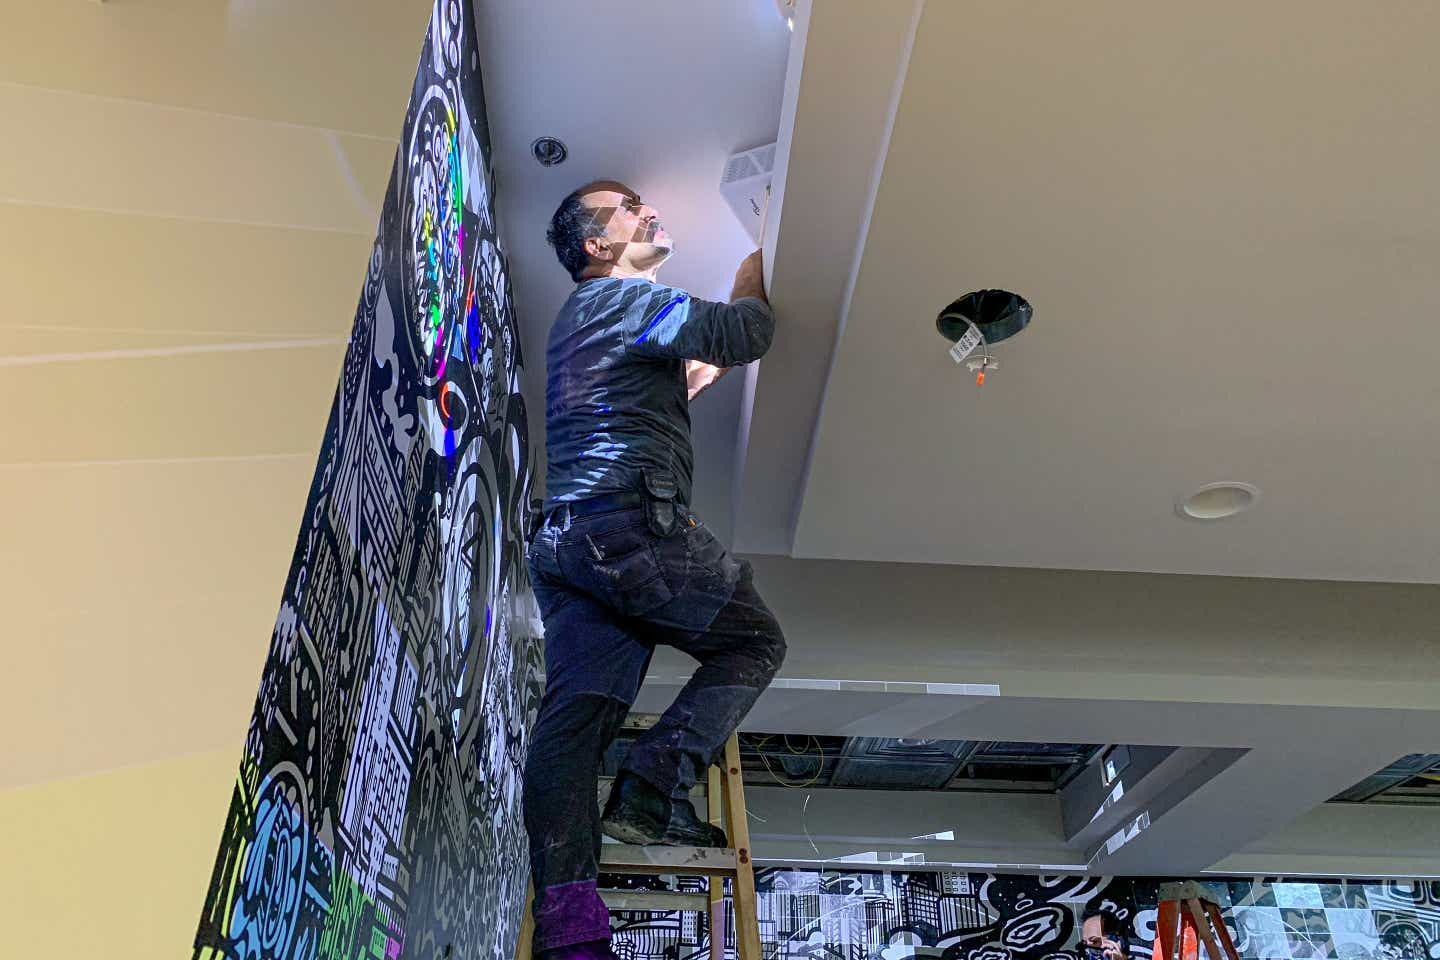 A man climbing a ladder while adjusting colored projectors for the outlined mural art featured in the lobby of our resort in New Orleans, Louisiana.